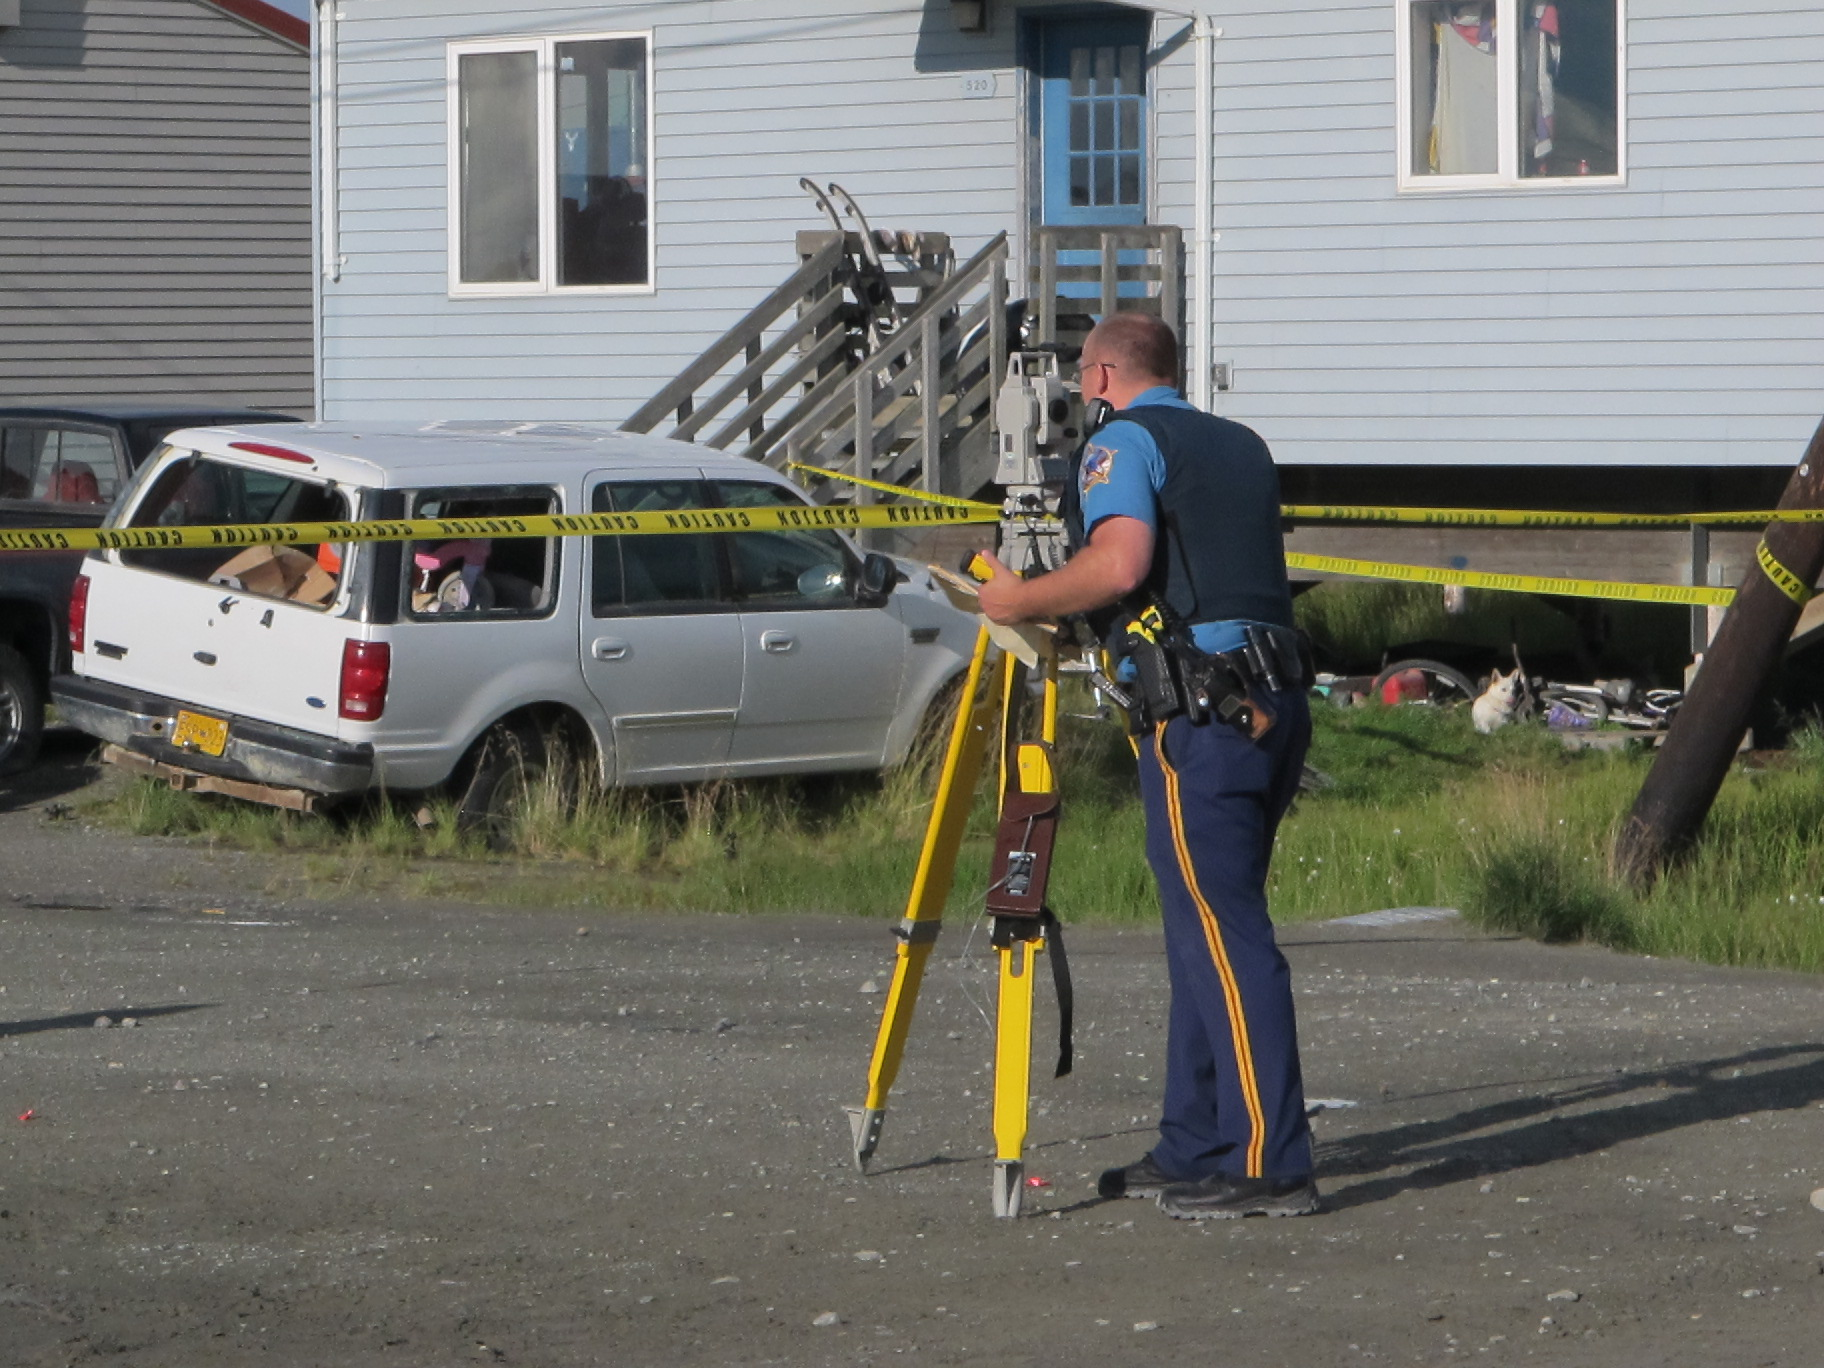 Investigators are looking into a shooting that happened Friday morning in Bethel. (Photo by Daysha Eaton / KYUK)